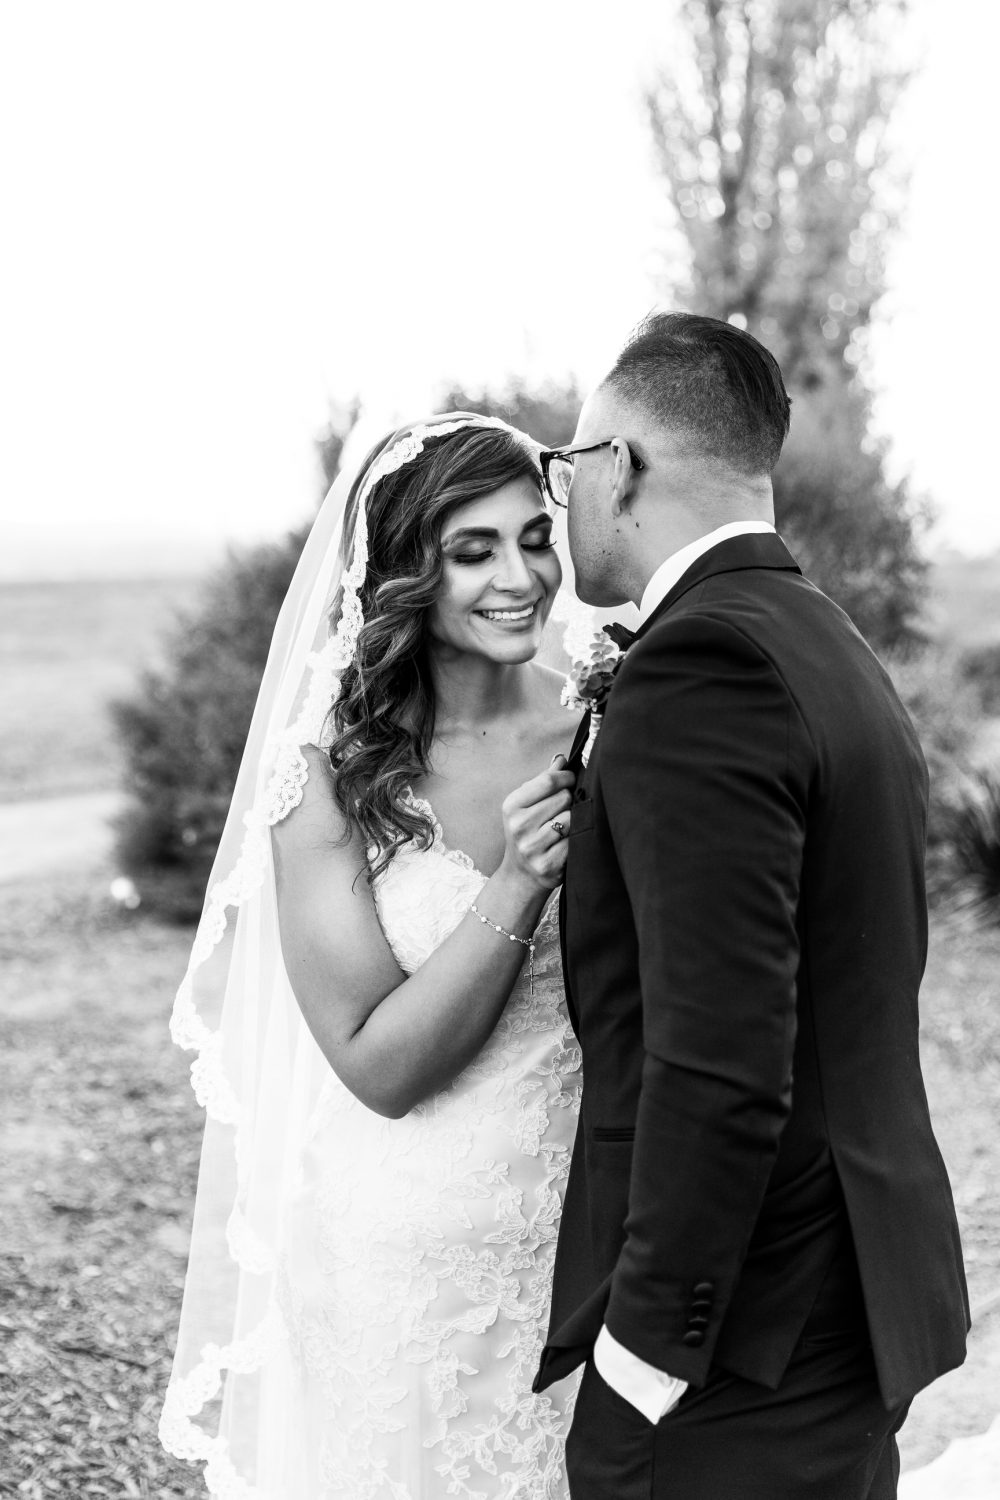 Photo by: @GlennPictures | www.glennpictures.com